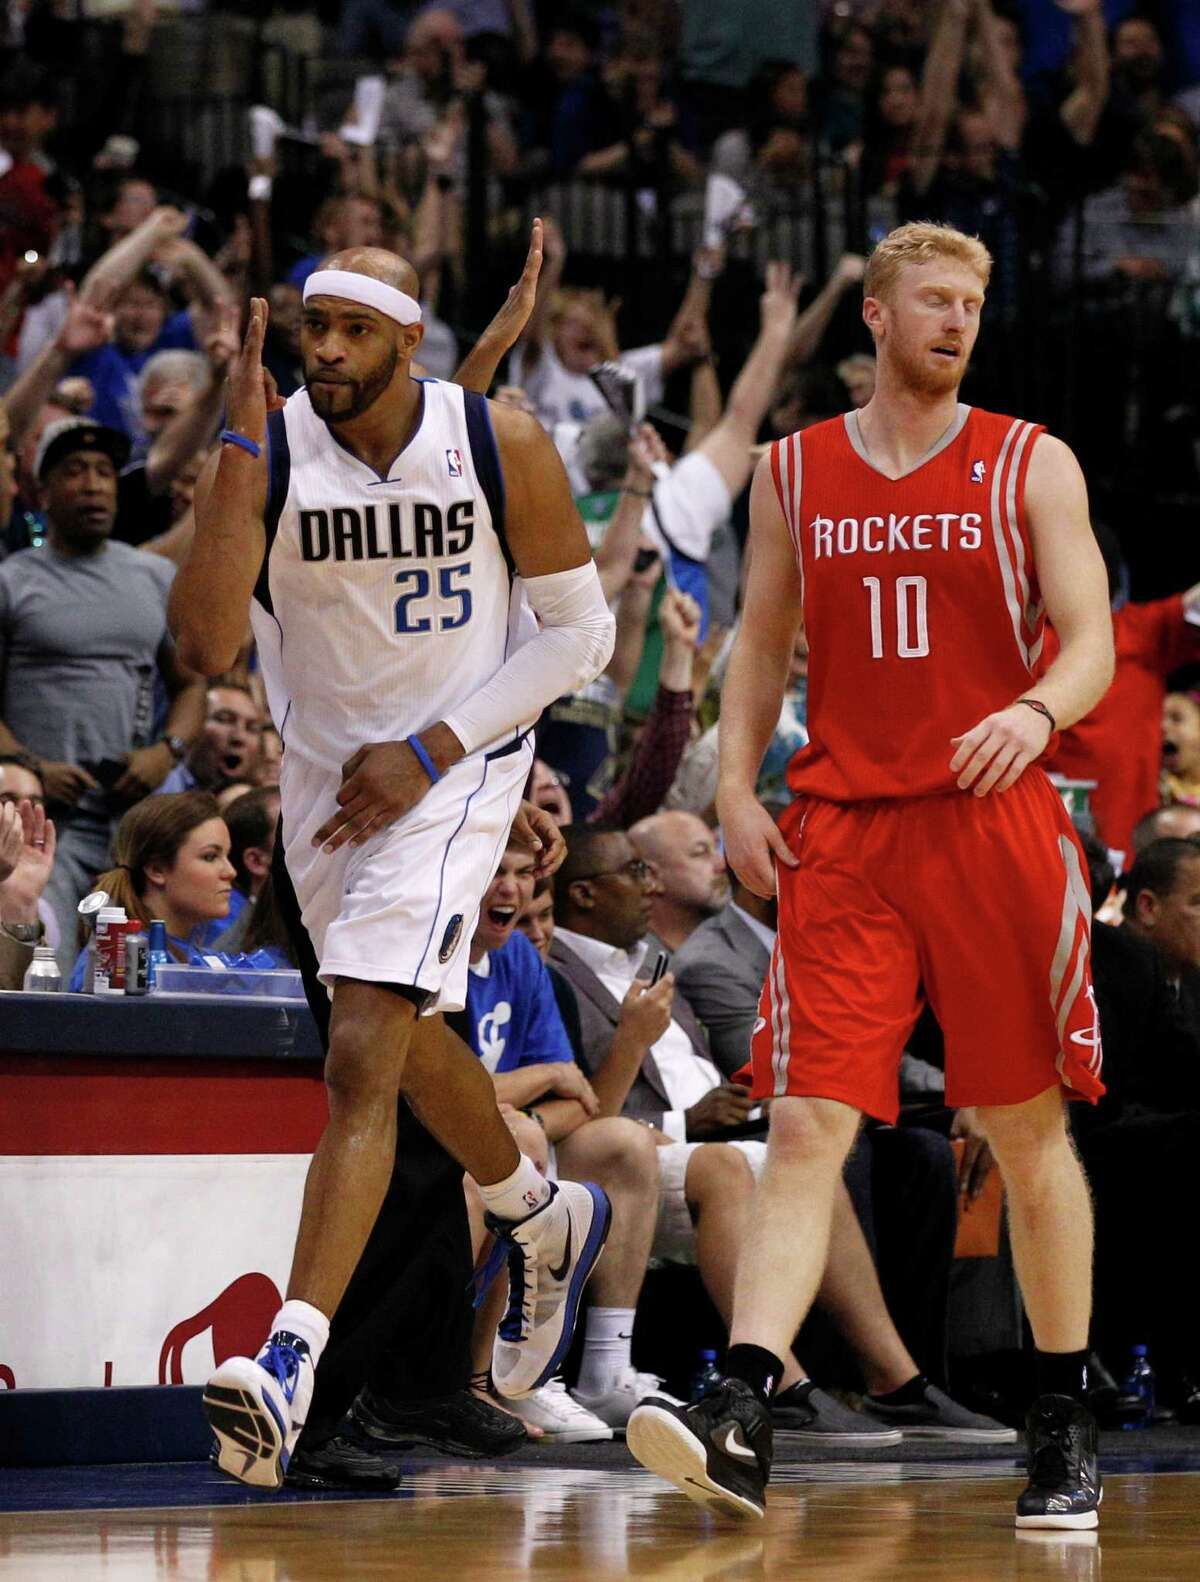 Dallas Mavericks' Vince Carter (25) celebrates a three-point basket in front of Houston Rockets' Chase Budinger (10) late in the second half of an NBA basketball game on Wednesday, April 18, 2012, in Dallas. The Mavericks won 117-110.